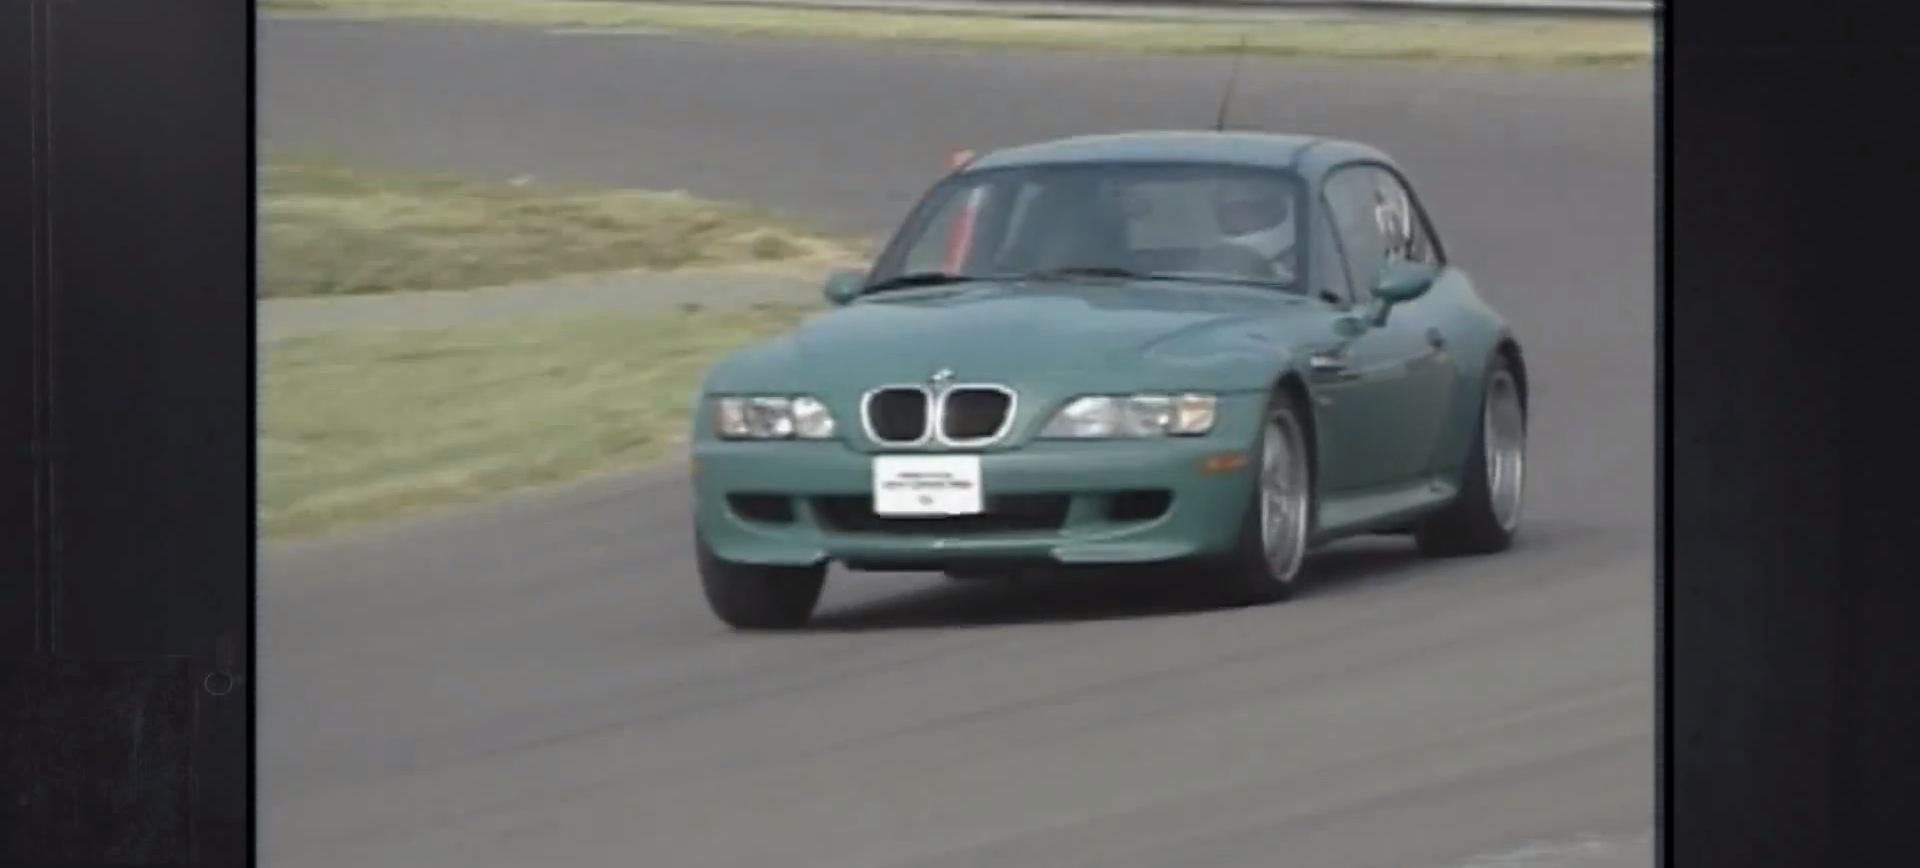 Check Out This Review Of A BMW Z M Coupe Autoevolution - 1999 bmw z3 m roadster